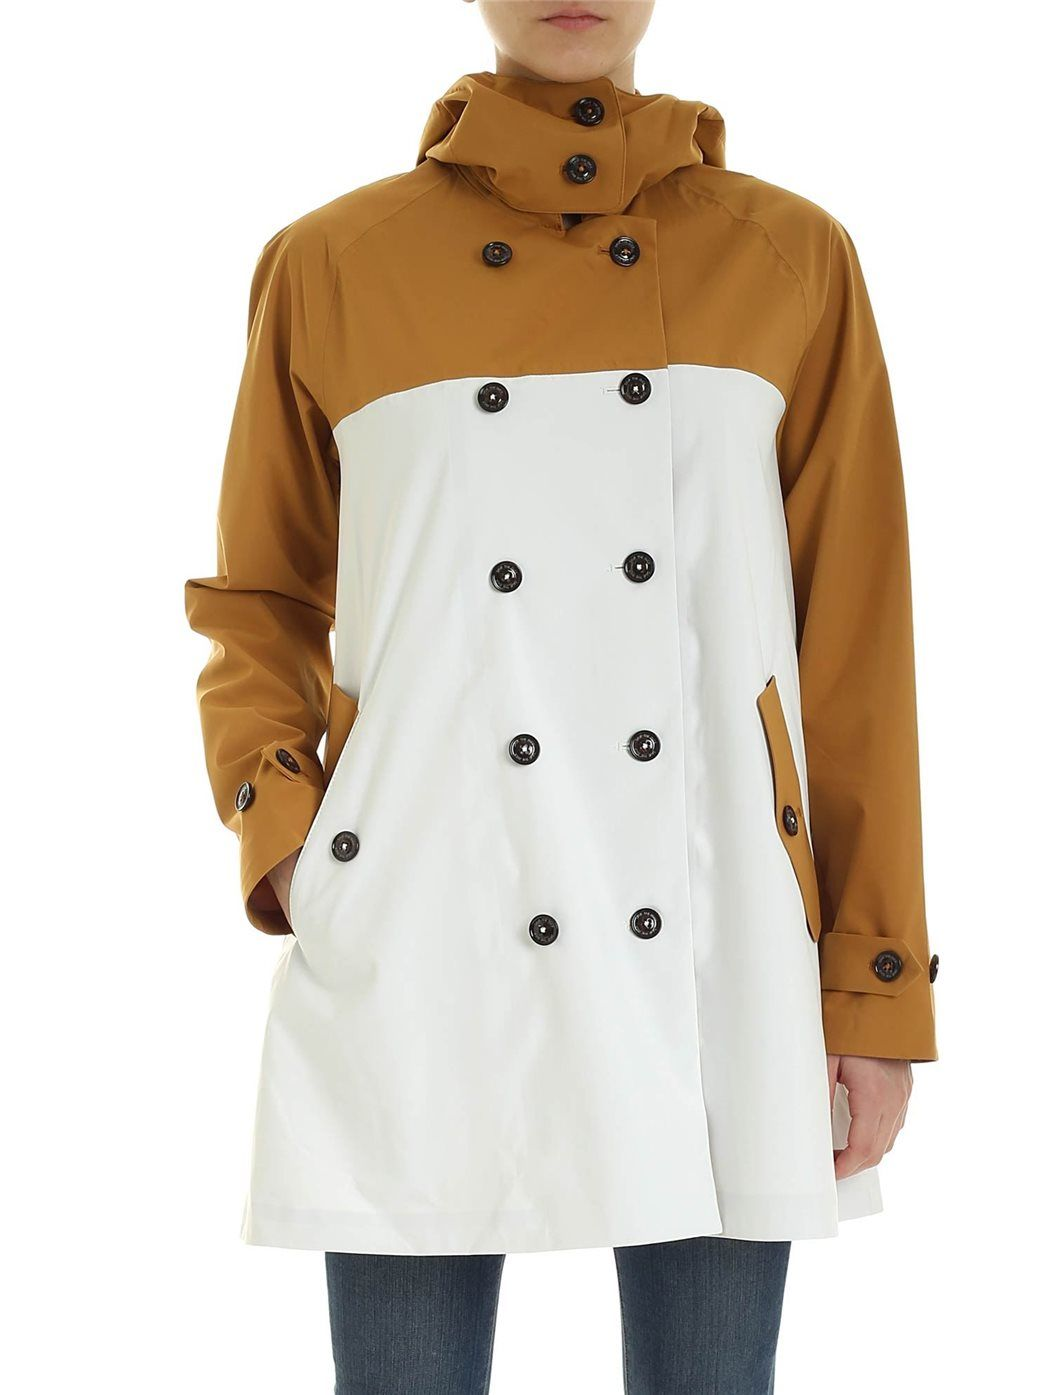 SAVE THE DUCK Cappotto doppiopetto beige e bianco